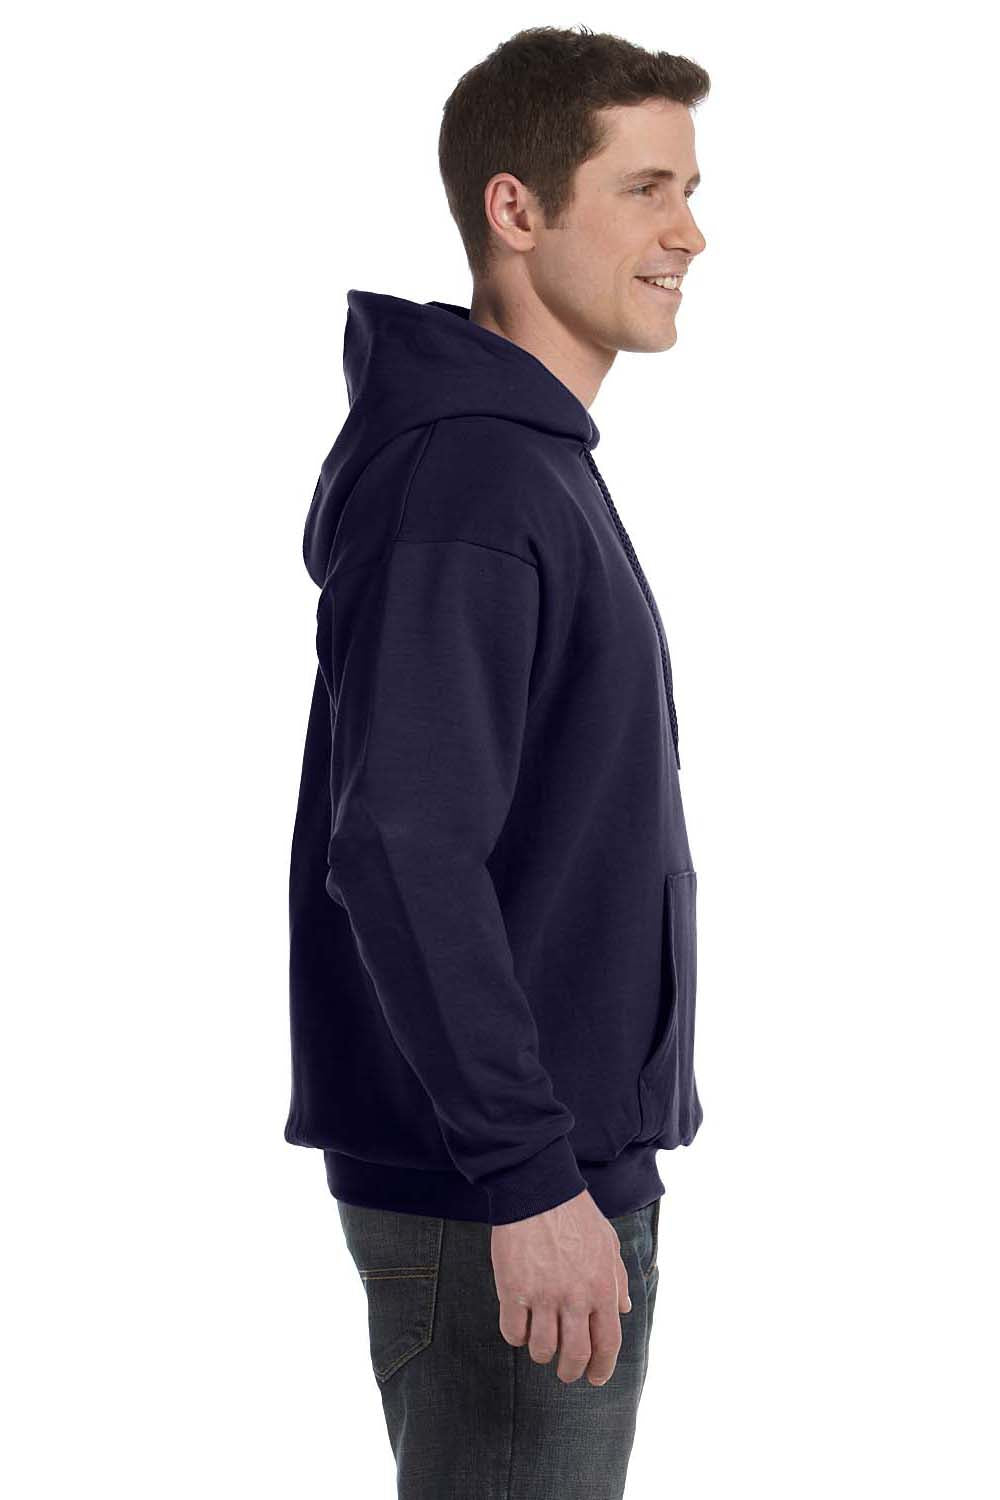 Hanes P170 Mens EcoSmart Print Pro XP Hooded Sweatshirt Hoodie Navy Blue Side